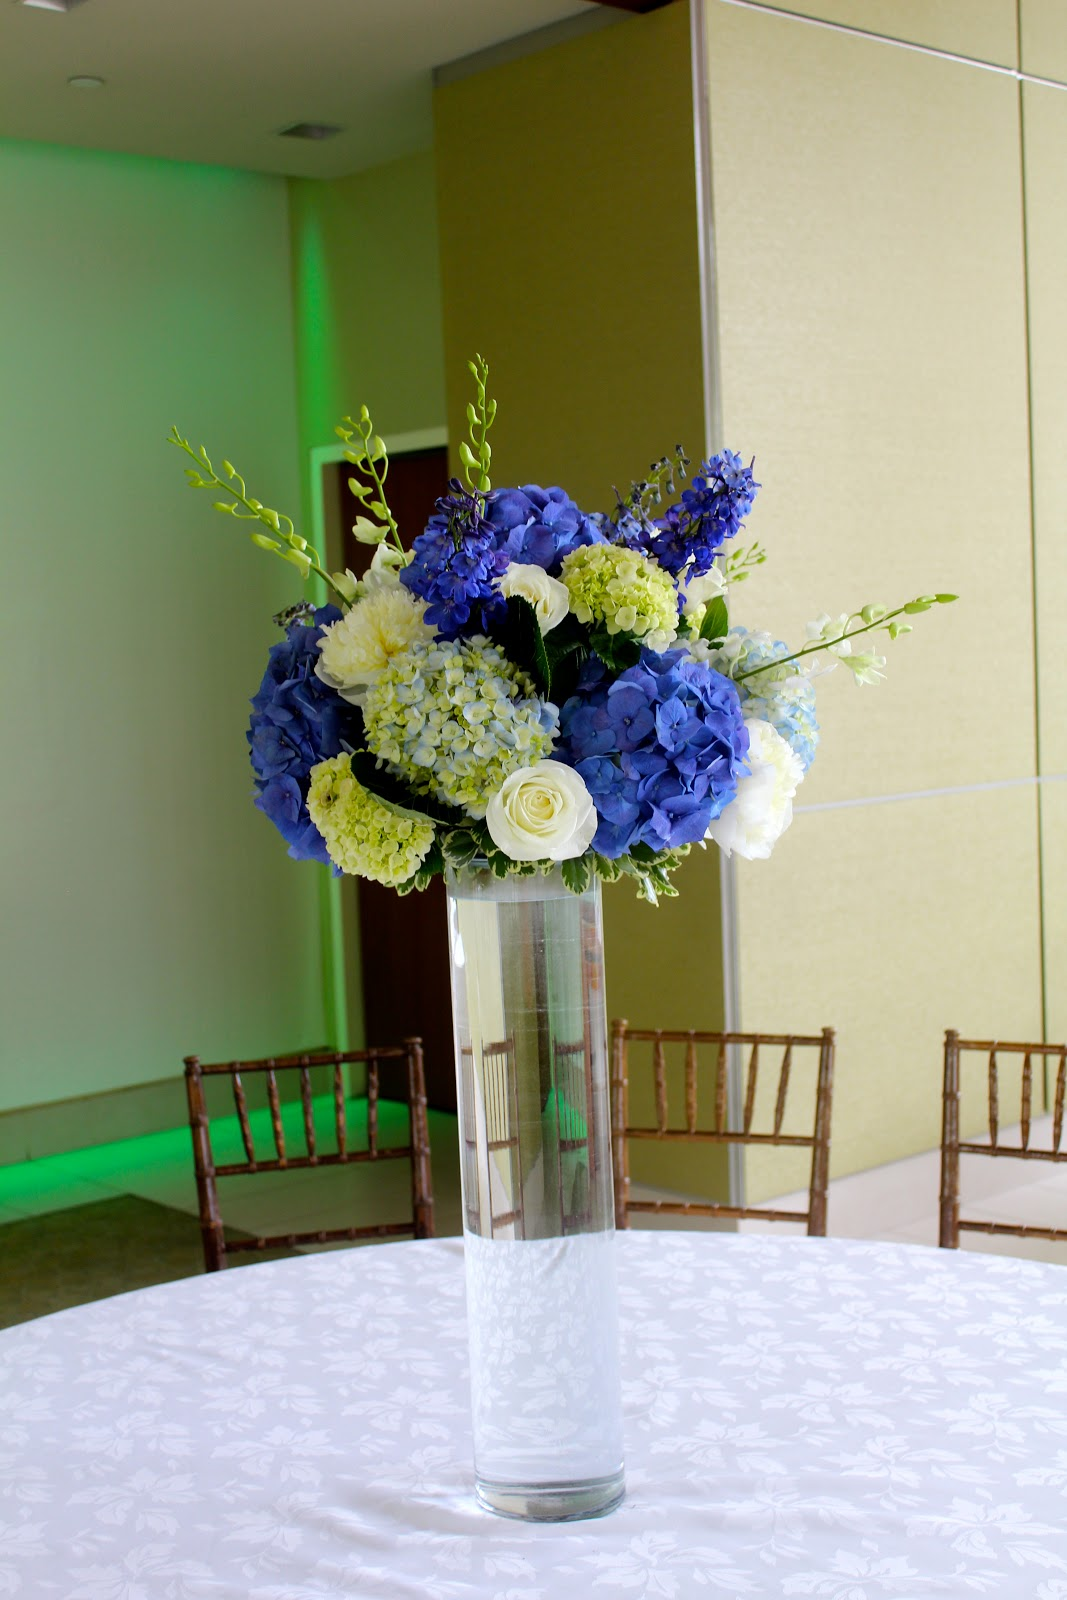 Allison phalen floral design nicole joe seaport hotel